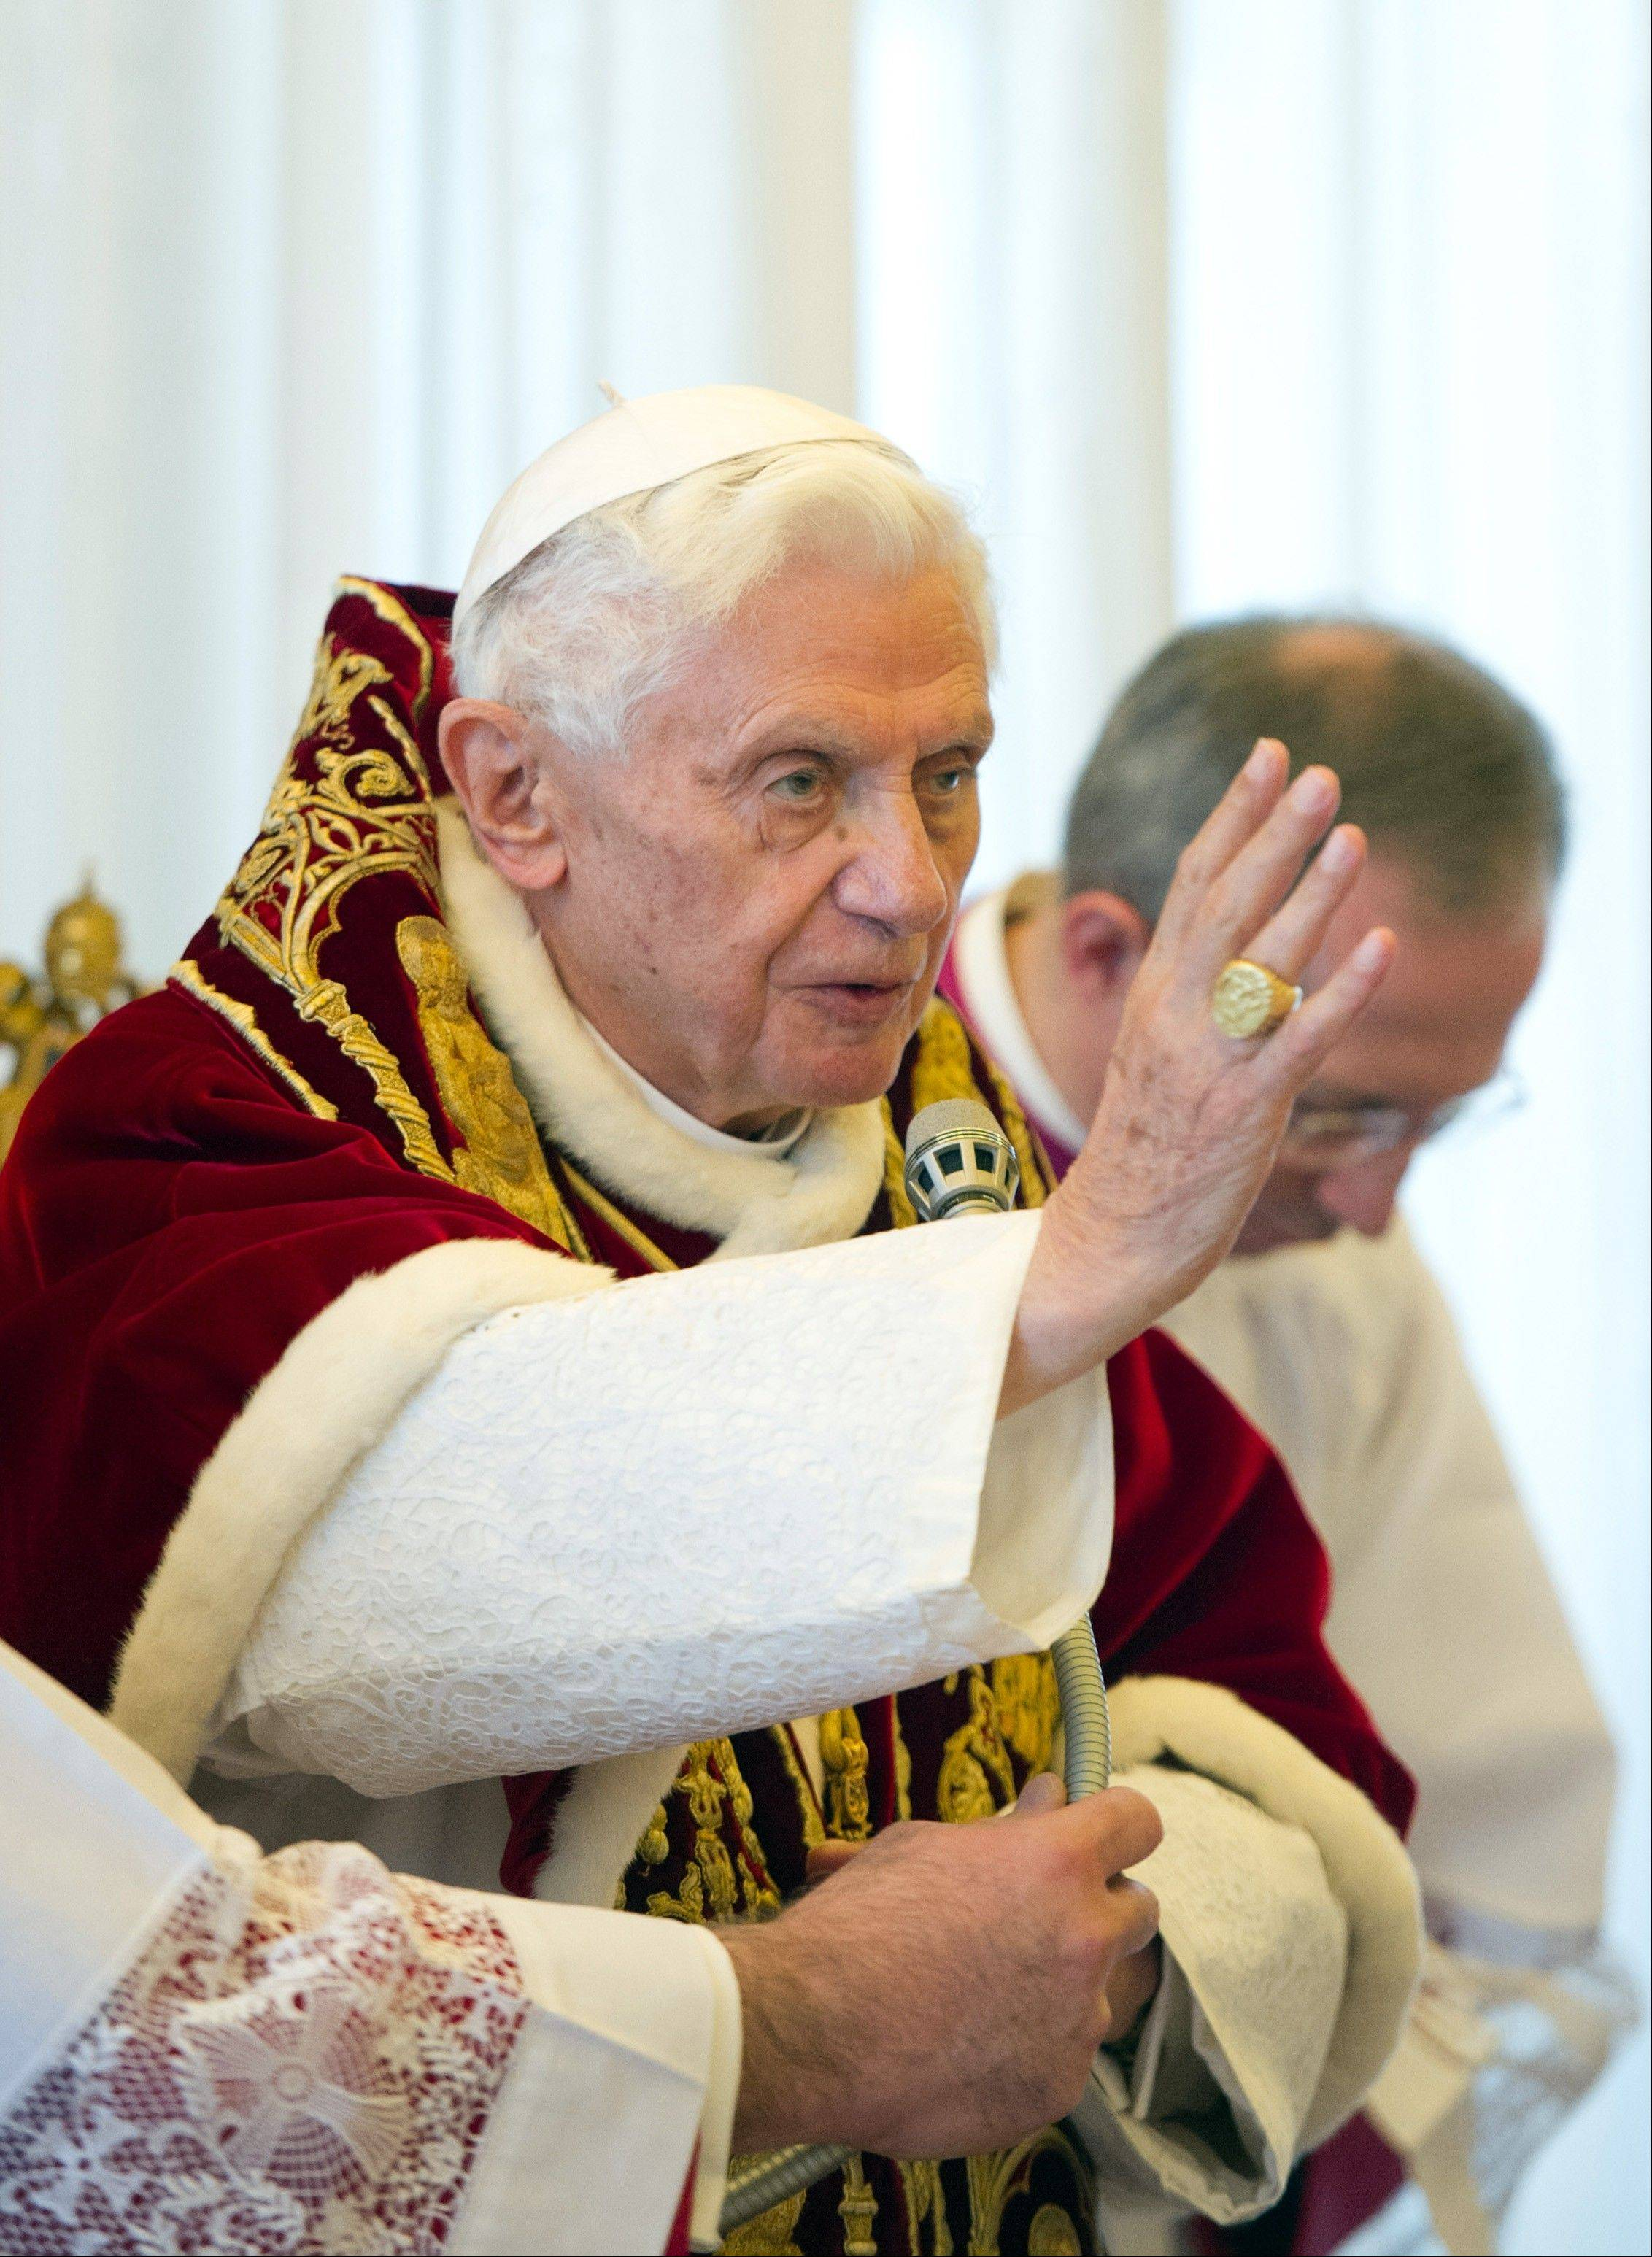 Pope Benedict XVI delivers his blessing Monday at the end of a meeting of Vatican cardinals.